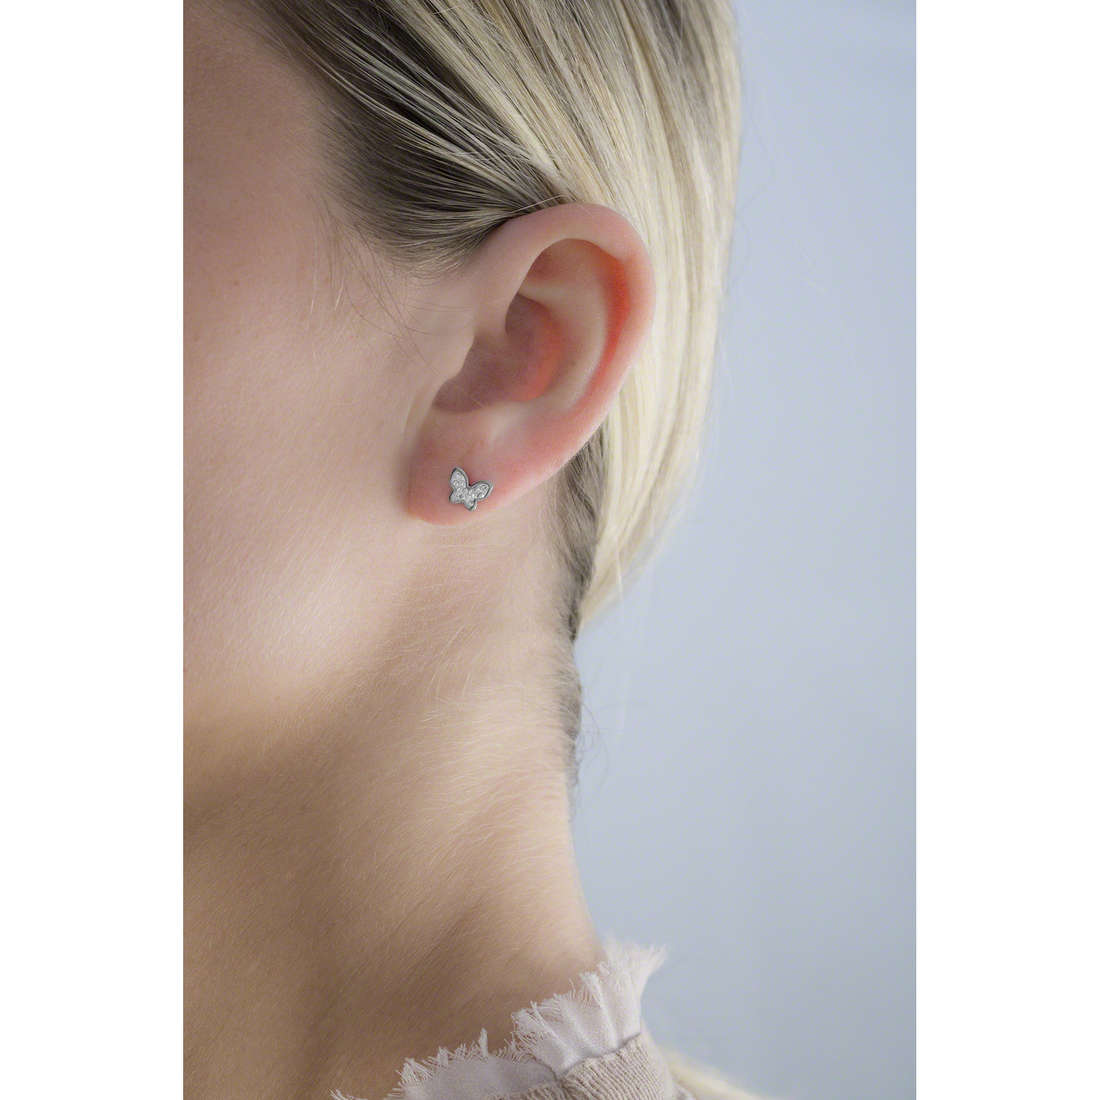 Marlù boucles d'oreille Time To femme 18OR028 indosso